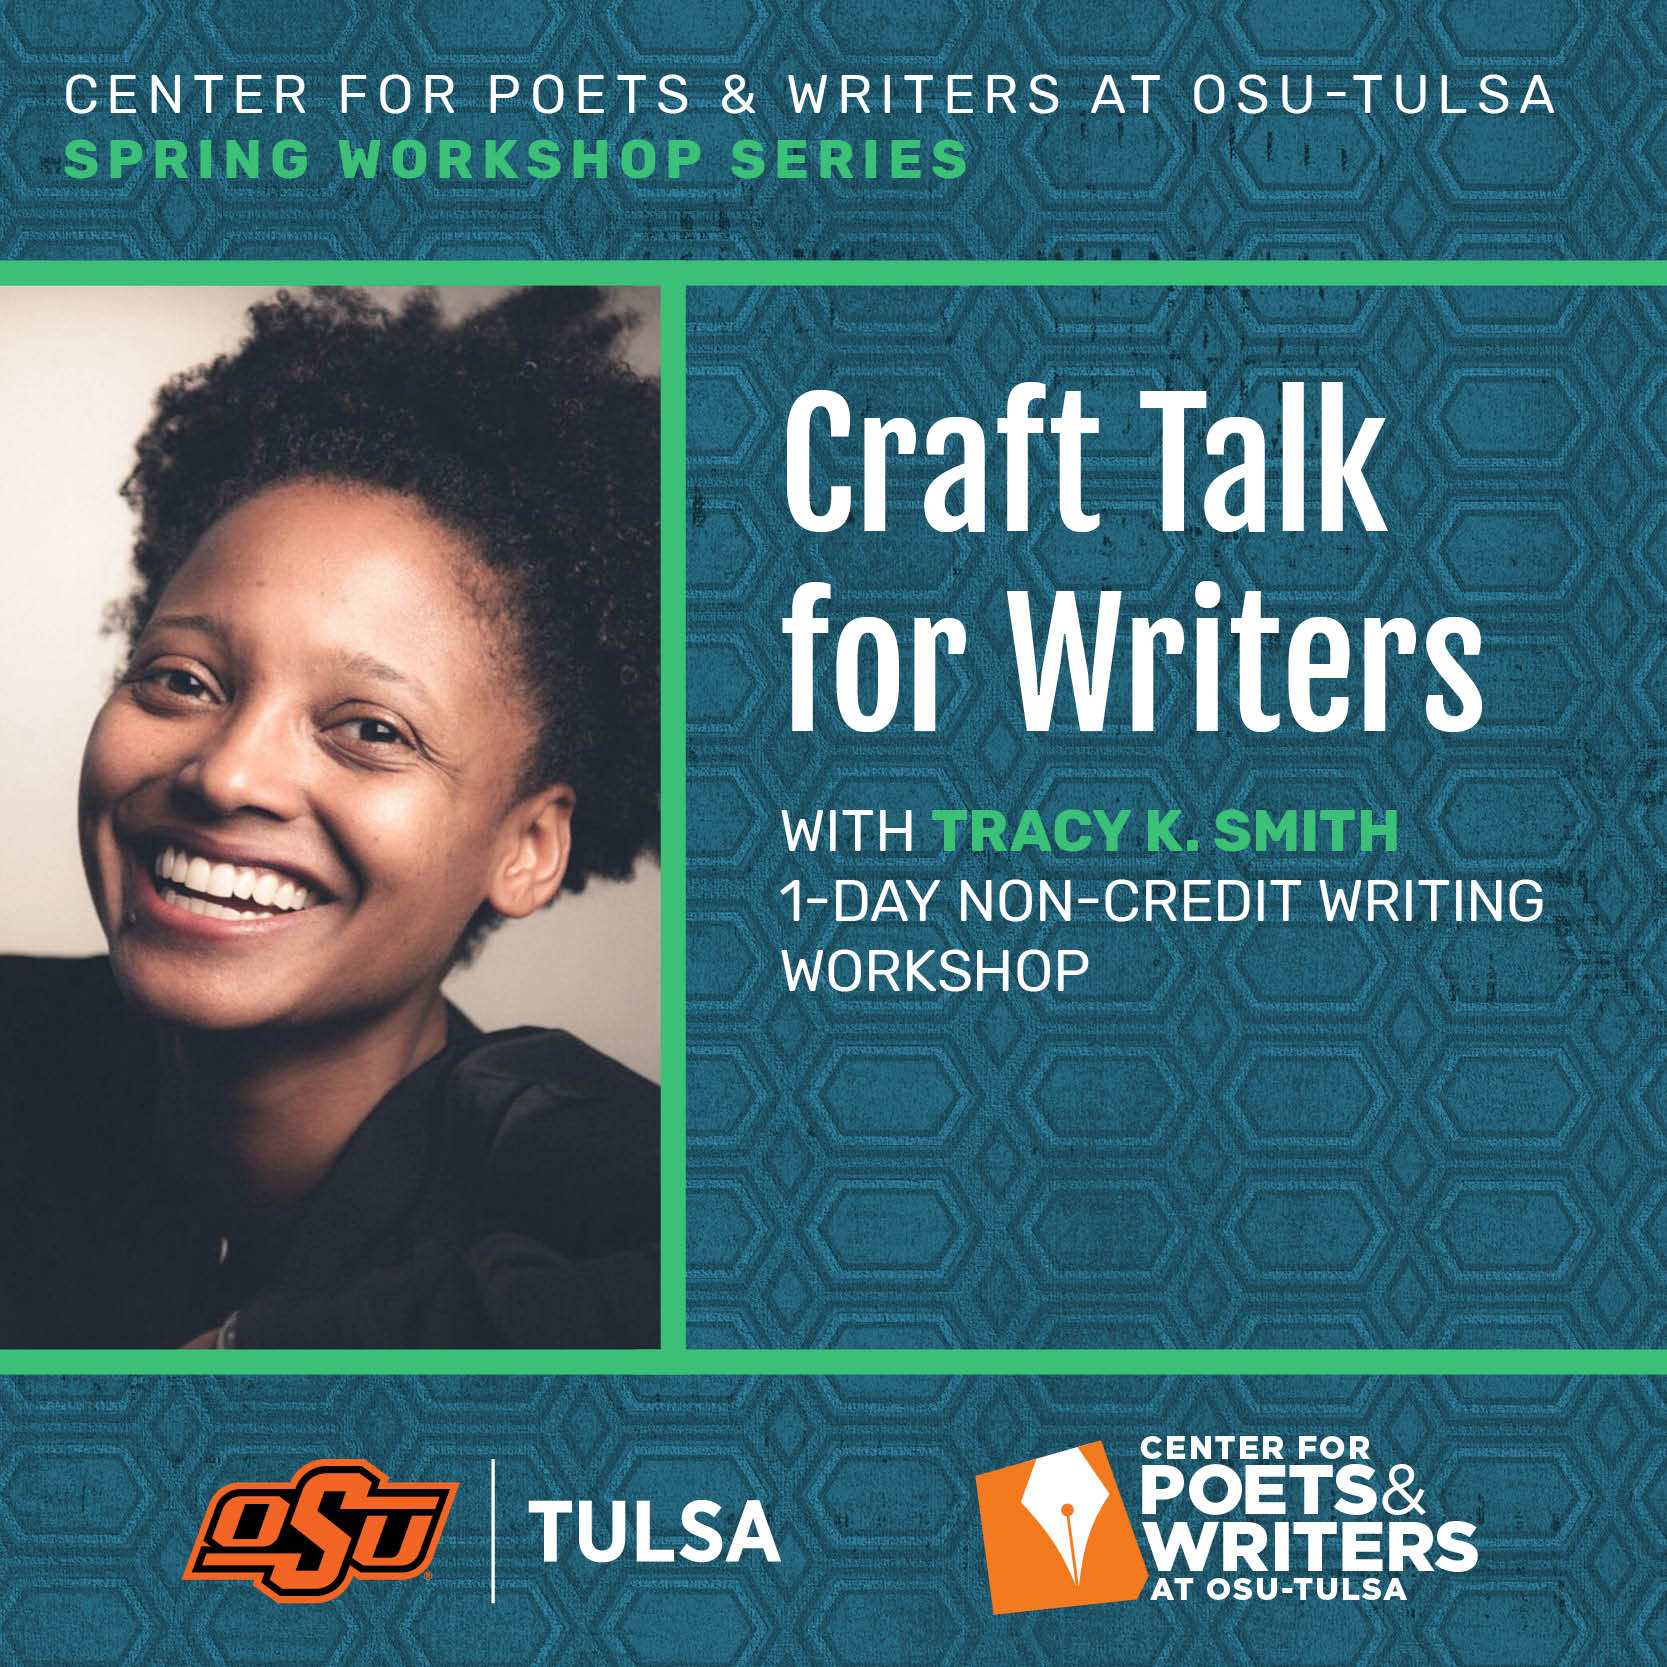 Craft Talk for Writers with Tracy K. Smith